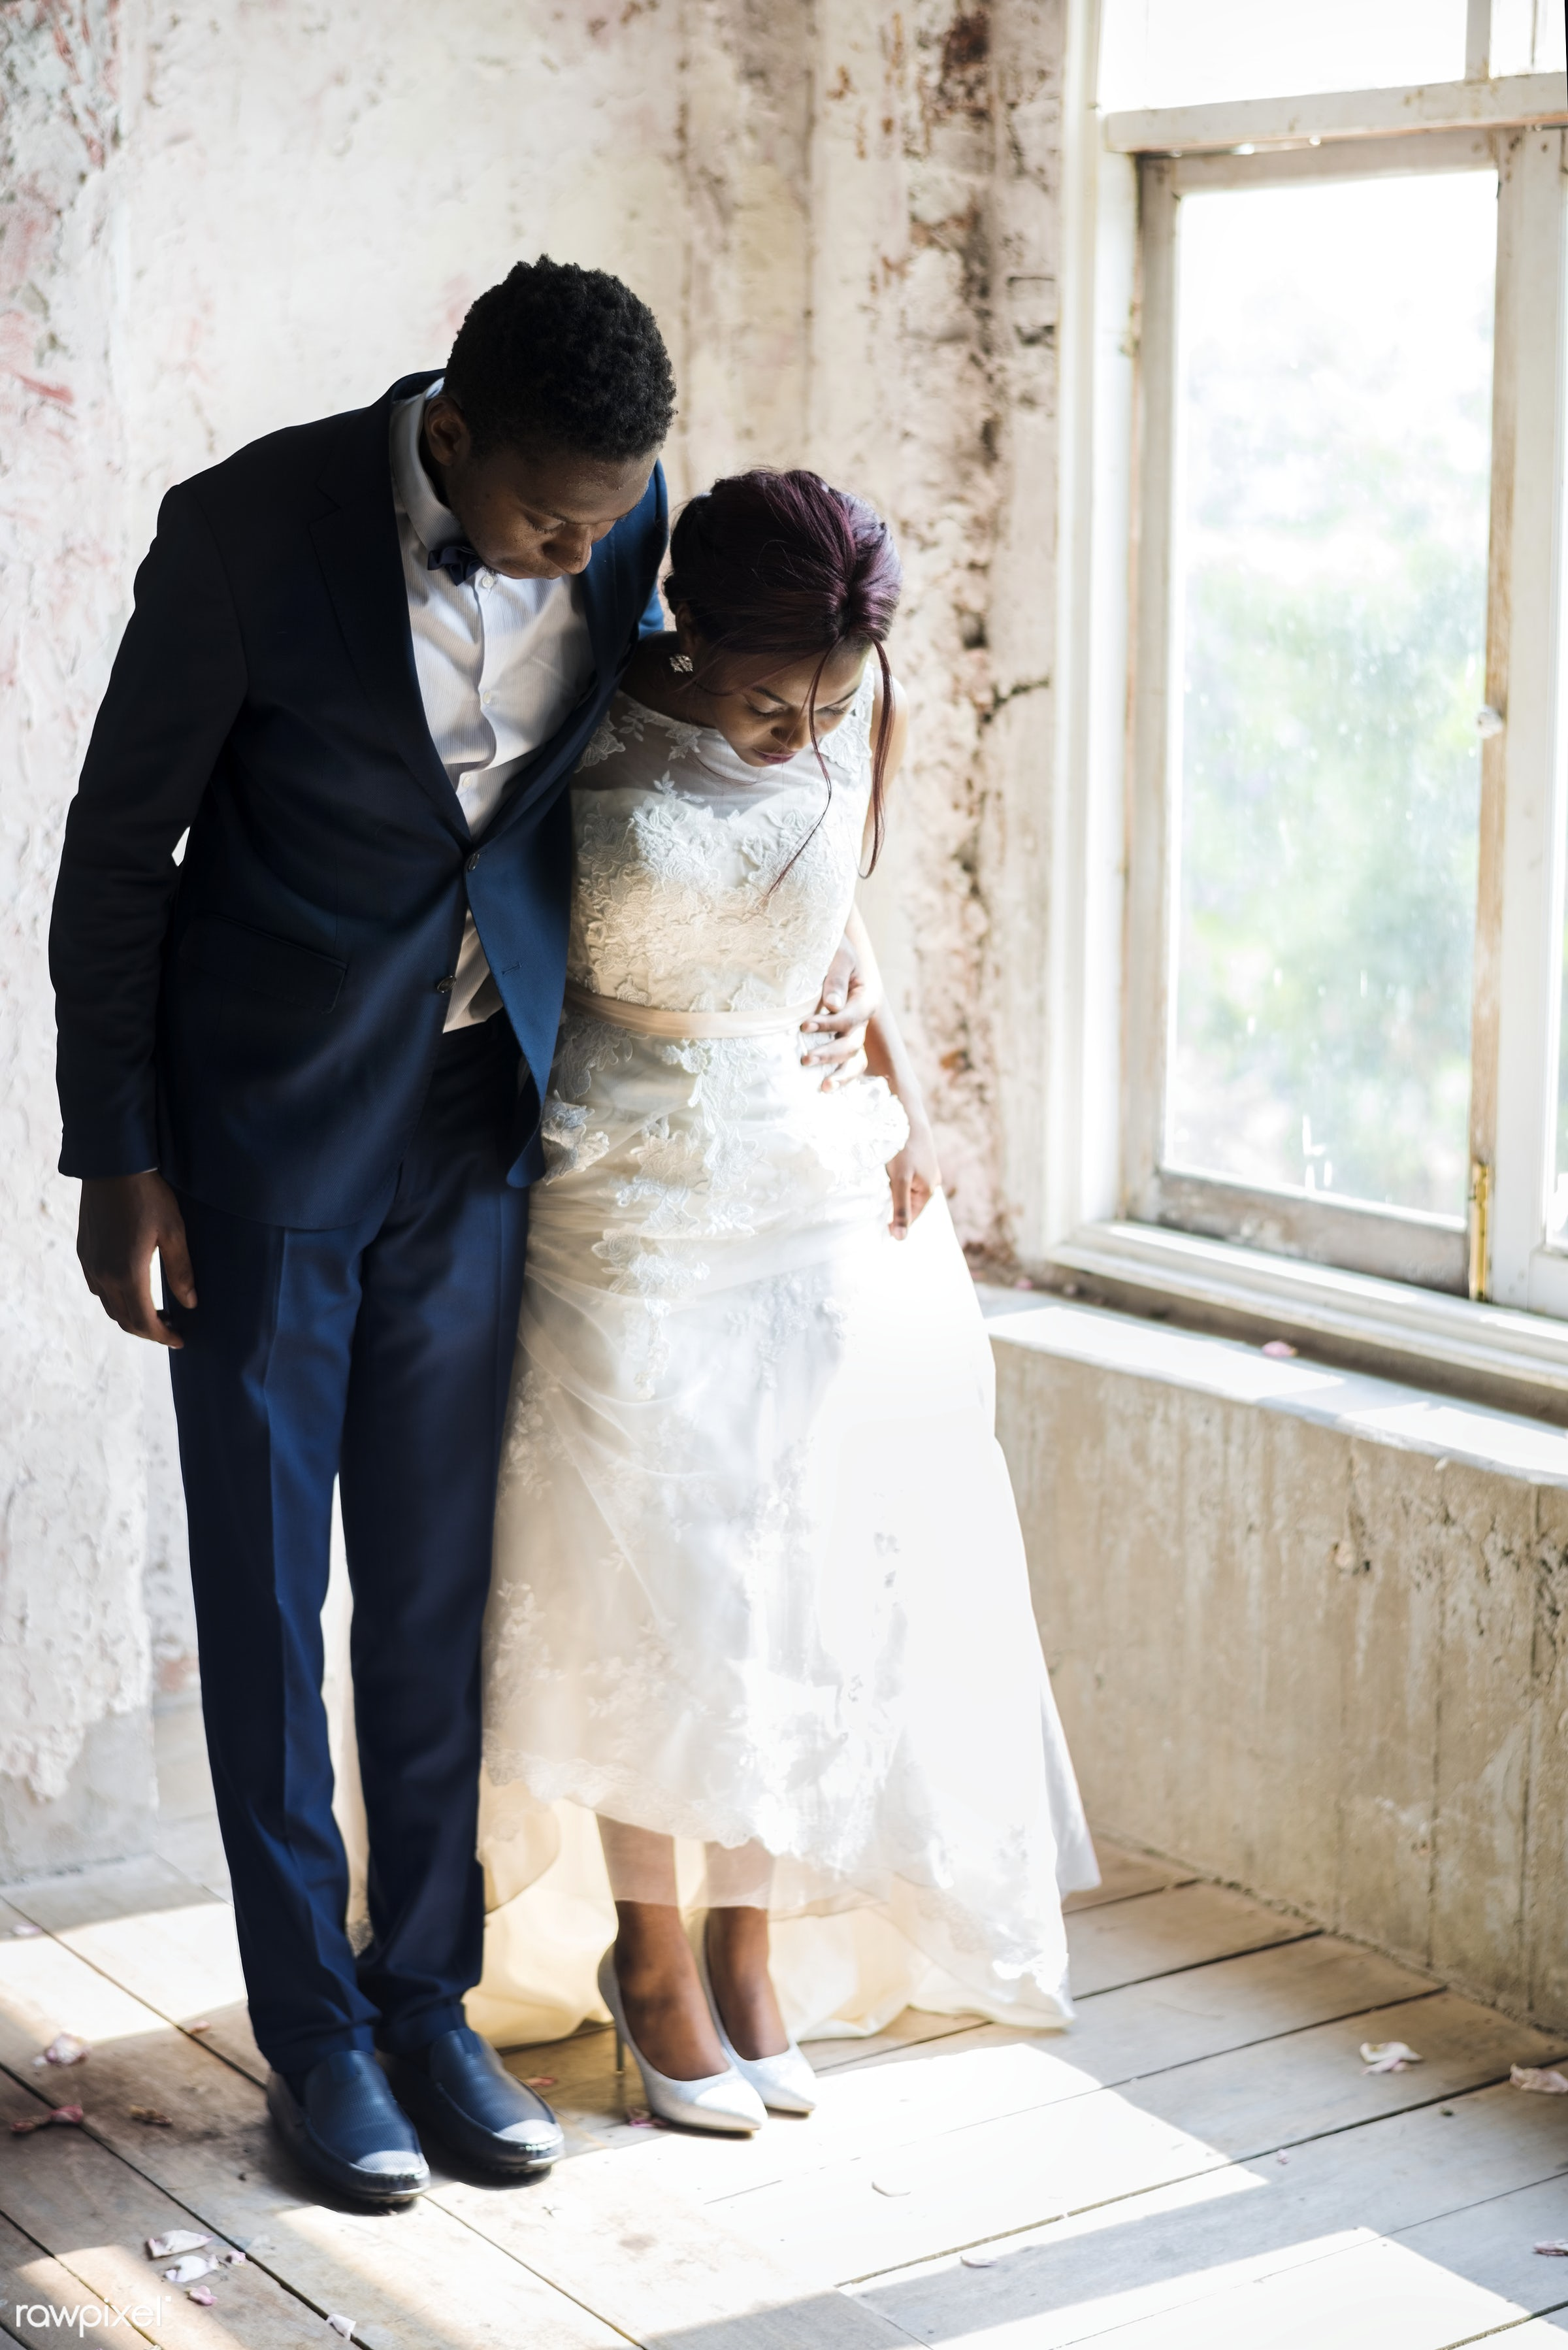 african descent, black, bride, ceremony, couple, engagement, fiance, formal, groom, marriage, married, mature, newlywed,...